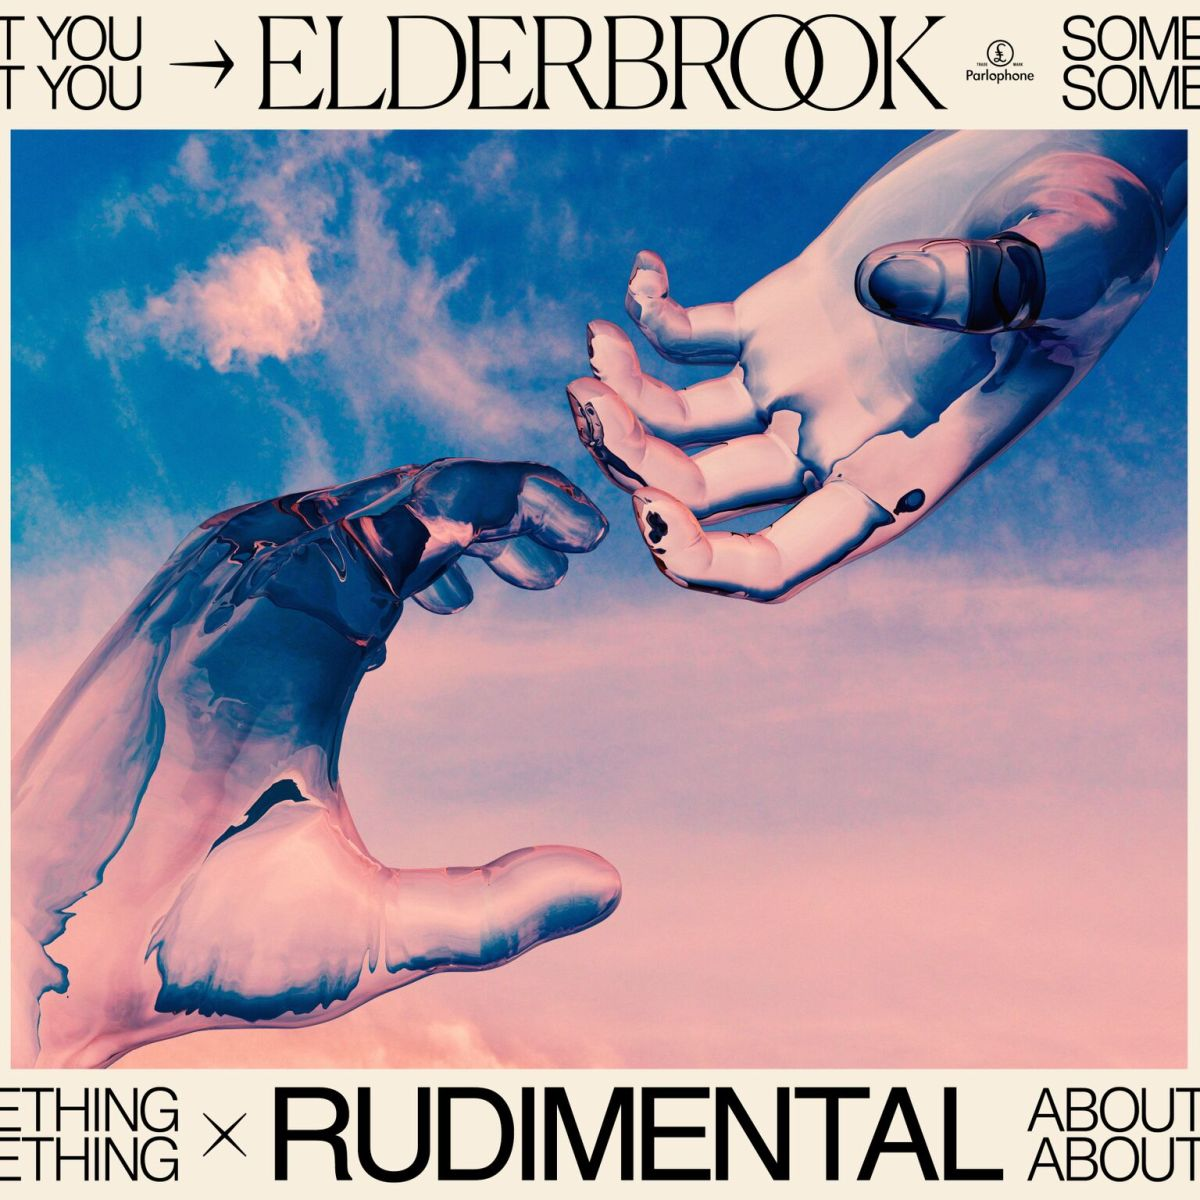 Something About You Elderbrook & Rudimental